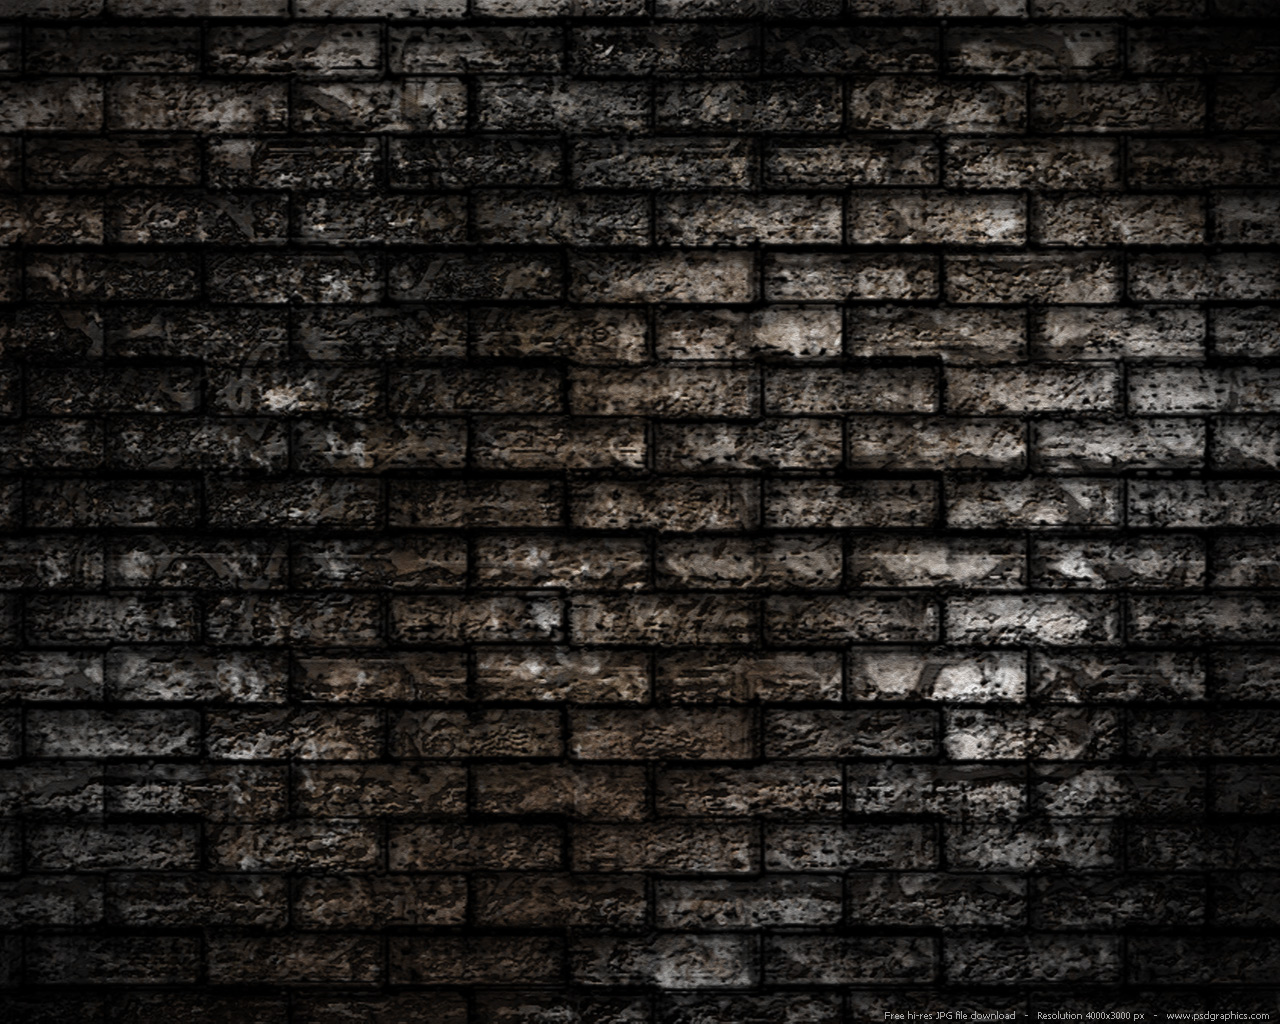 black brick wall, texture, bricks, brick wall texture, background, download, bricks